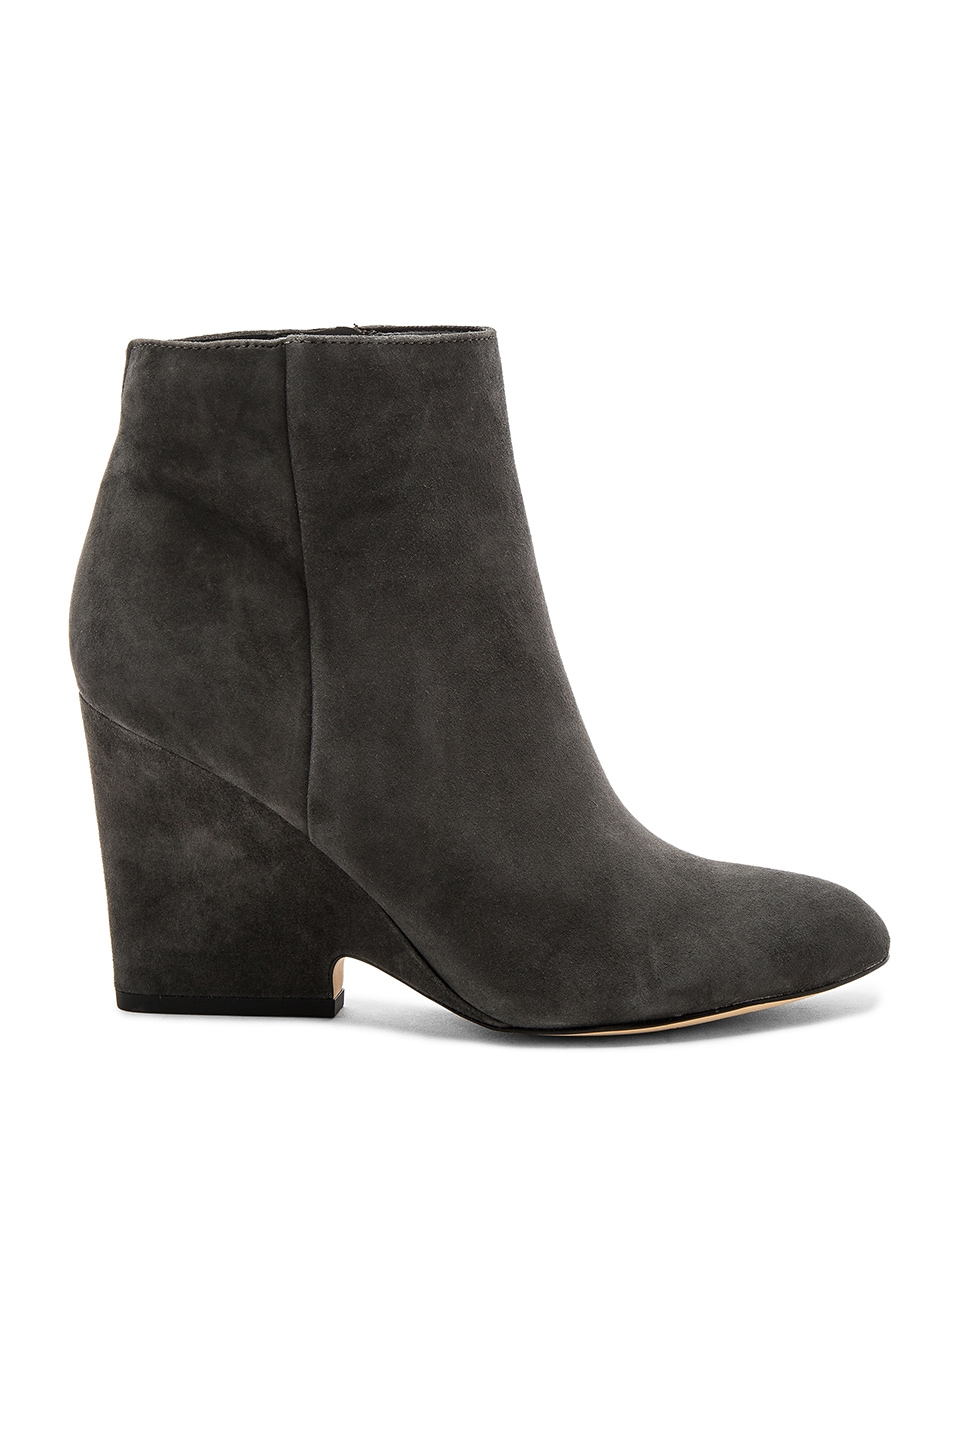 Sam Edelman Wilson Bootie in Phantom Grey